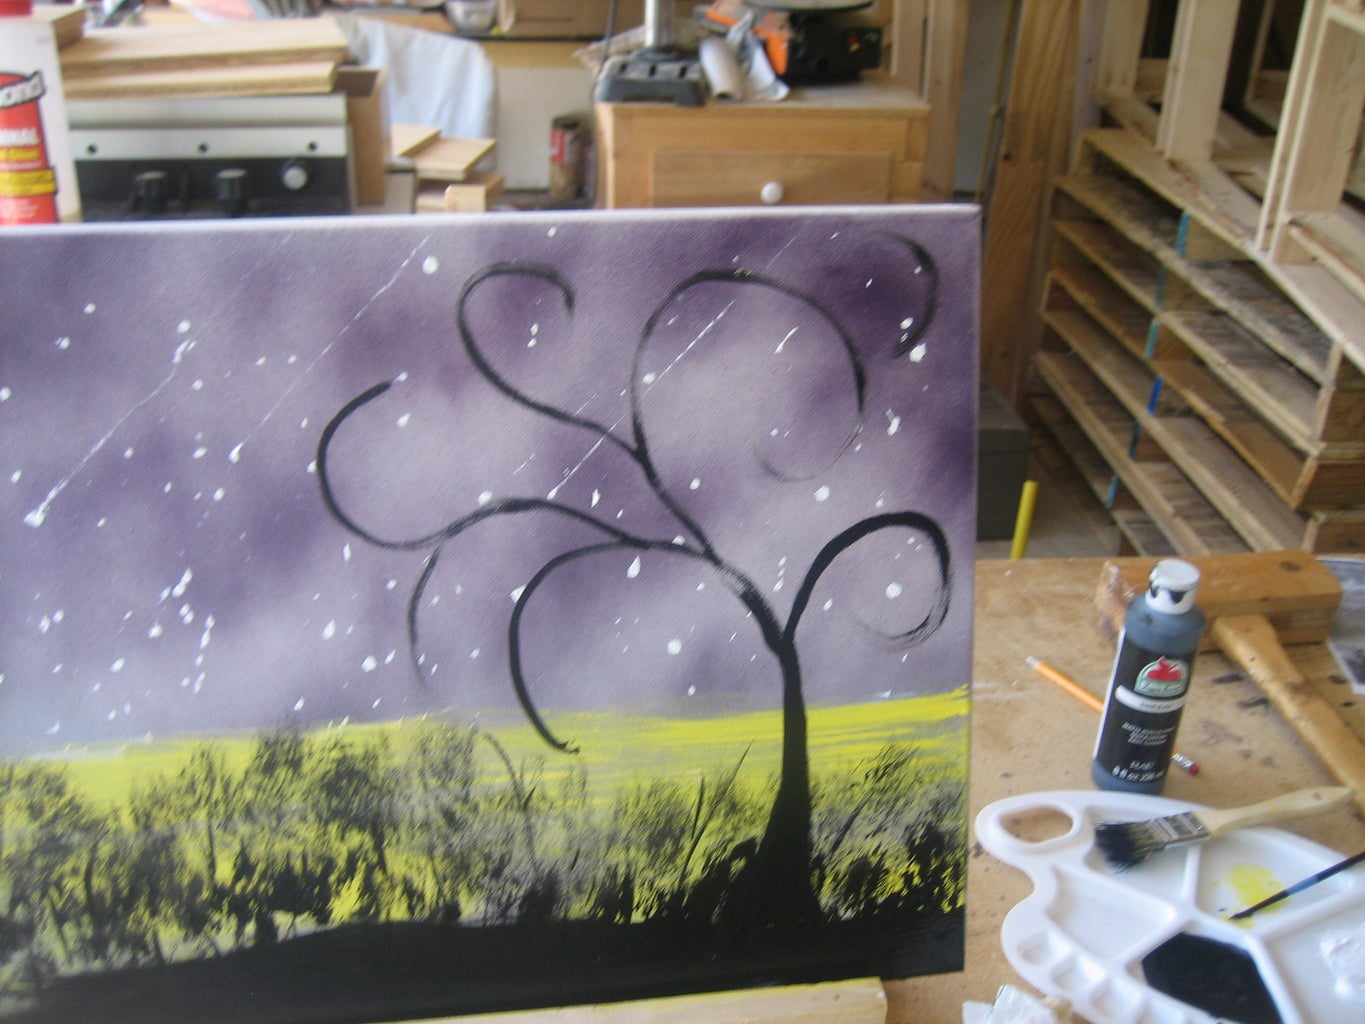 THE TREE, THE OWL, AND THE COMPLETED PAINTING